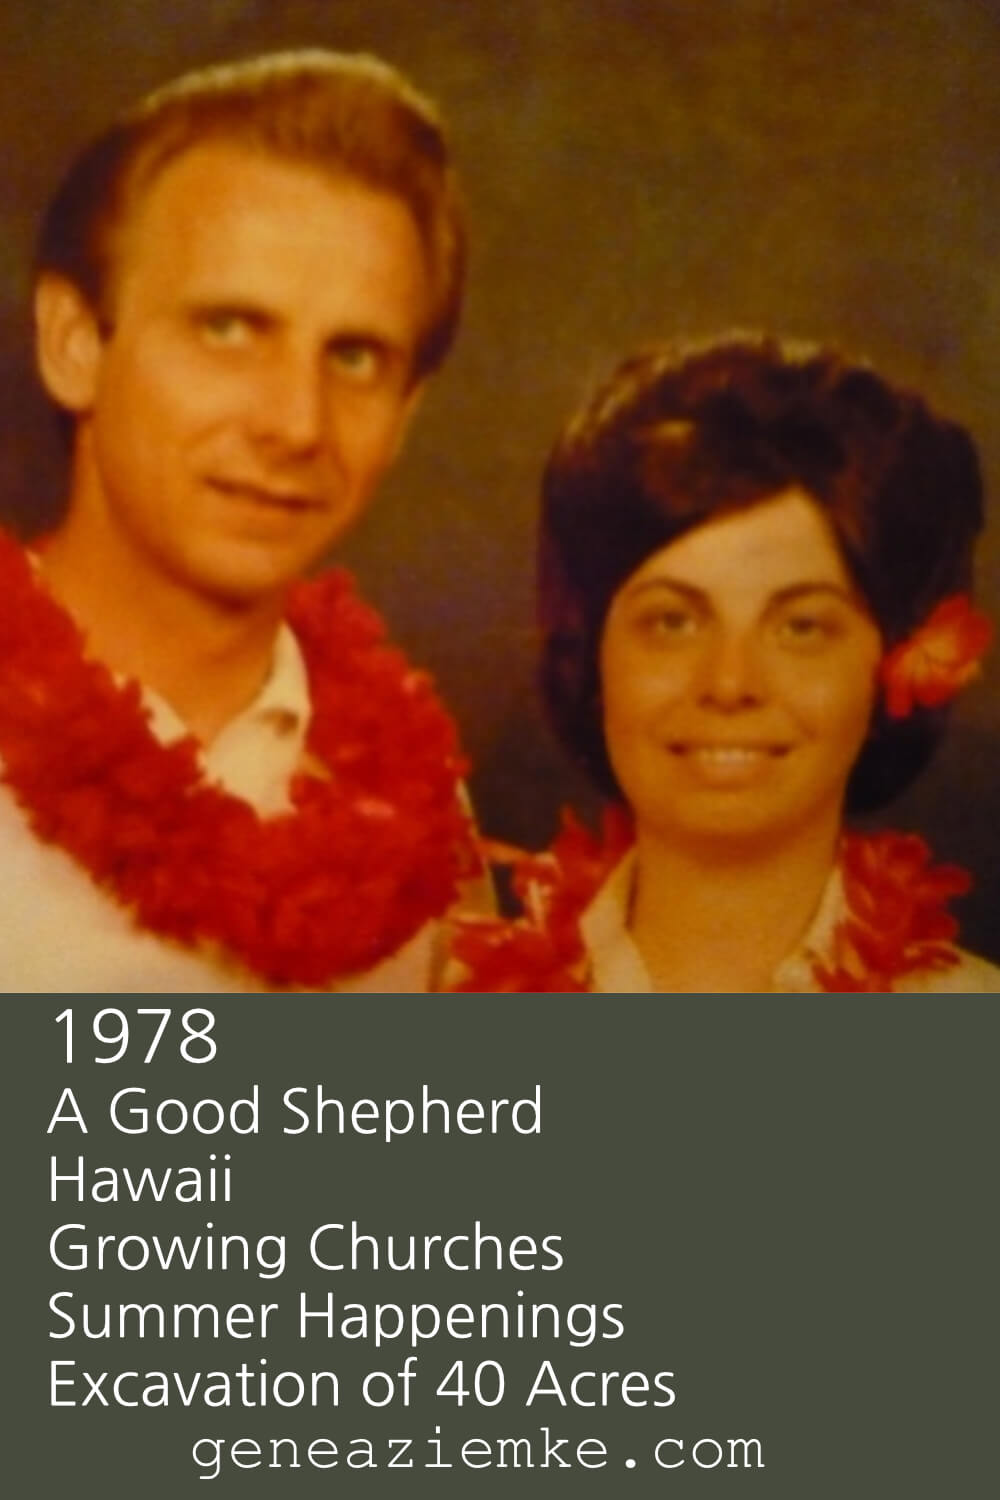 1978 - A Good Shepherd, Hawaii, Growing Churches, Summer Happenings, and Excavation Of 40 Acres